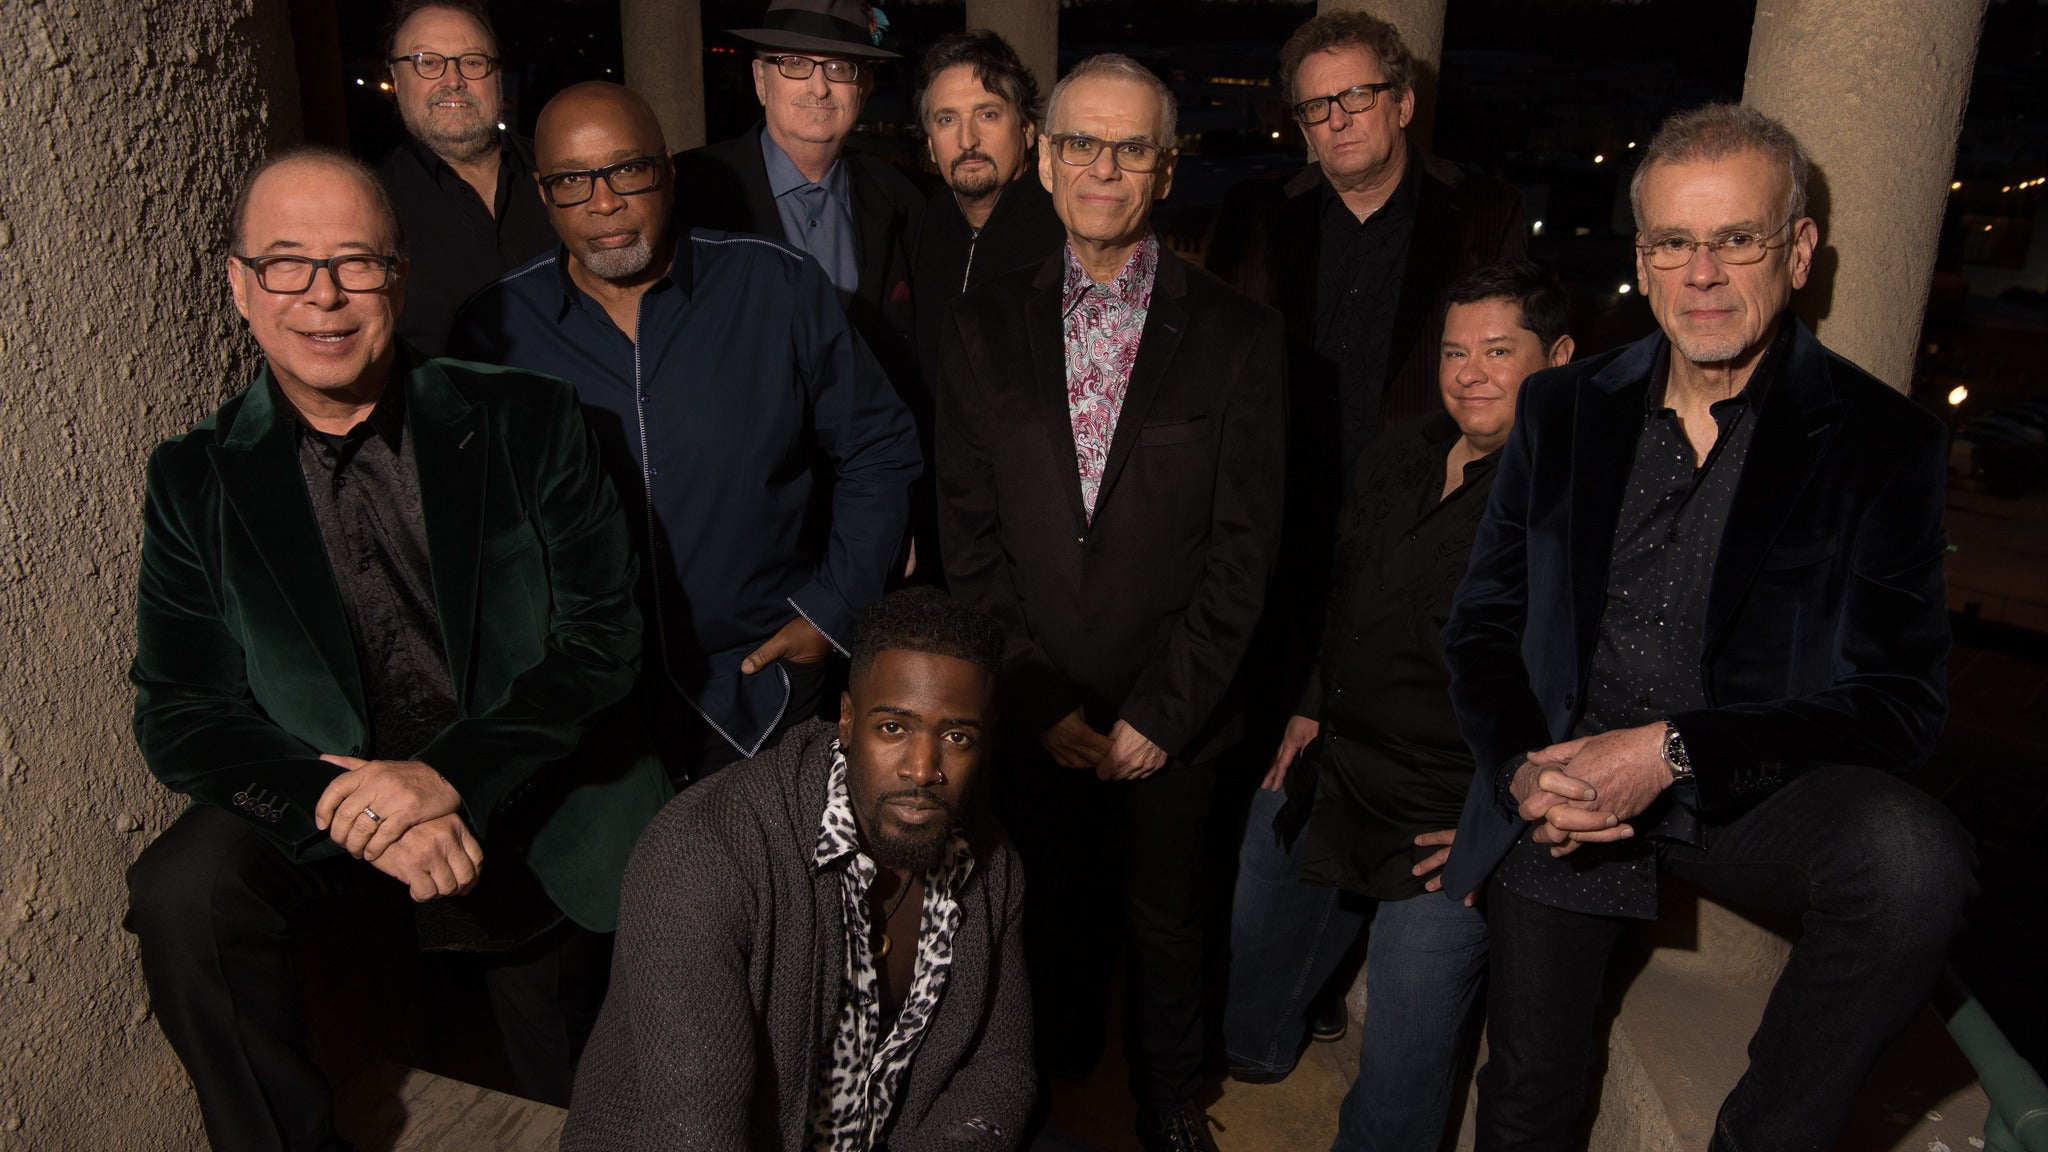 Tower of Power at Tower Theater